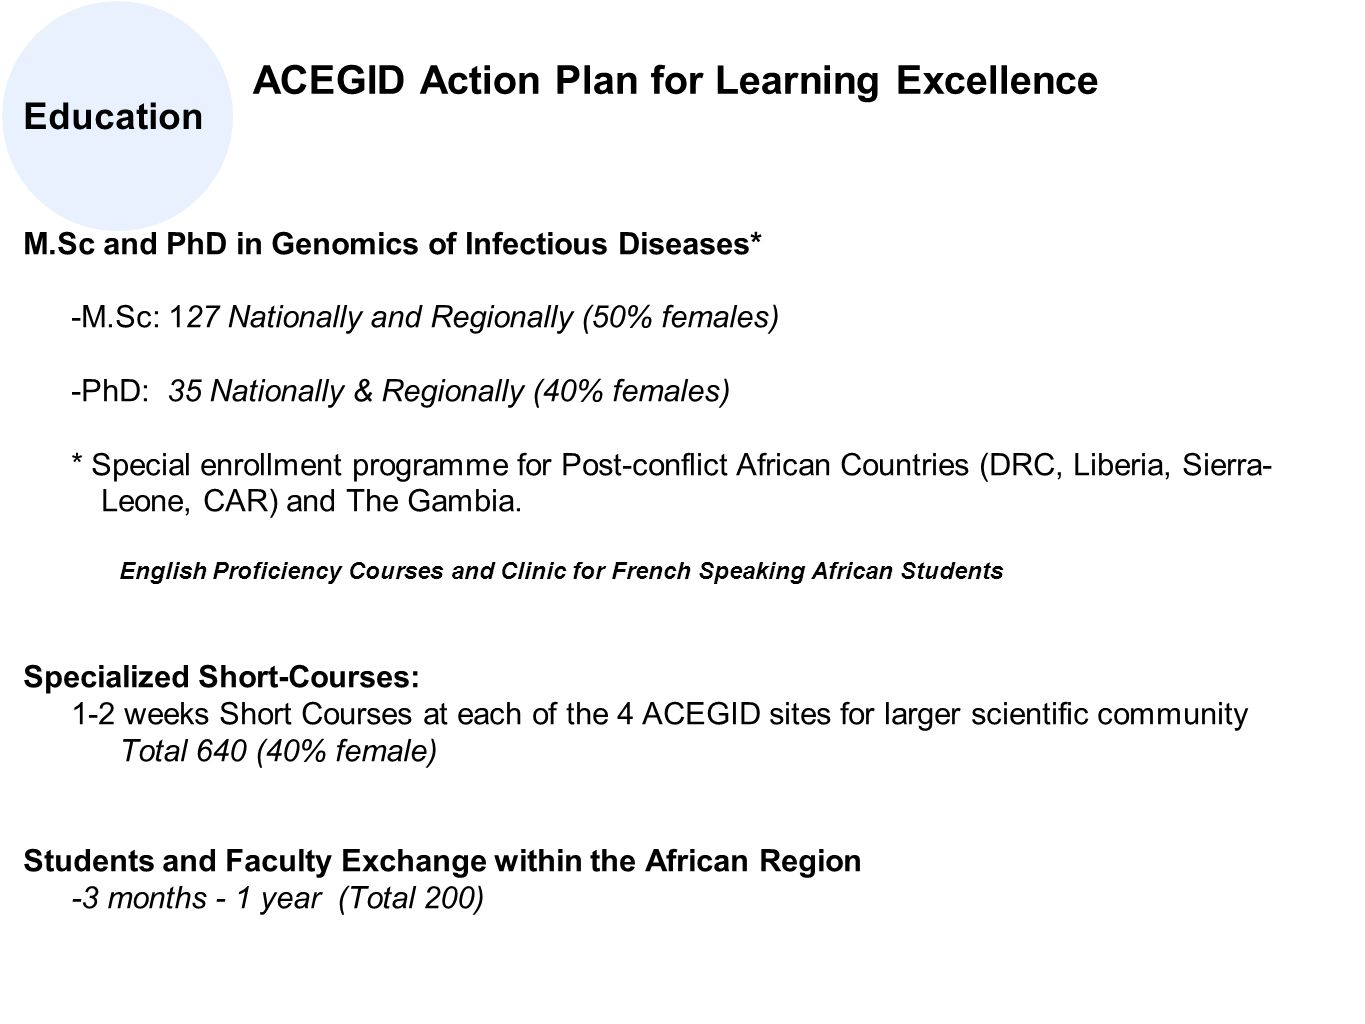 M.Sc and PhD in Genomics of Infectious Diseases* -M.Sc: 127 Nationally and Regionally (50% females) -PhD: 35 Nationally & Regionally (40% females) * Special enrollment programme for Post-conflict African Countries (DRC, Liberia, Sierra- Leone, CAR) and The Gambia.